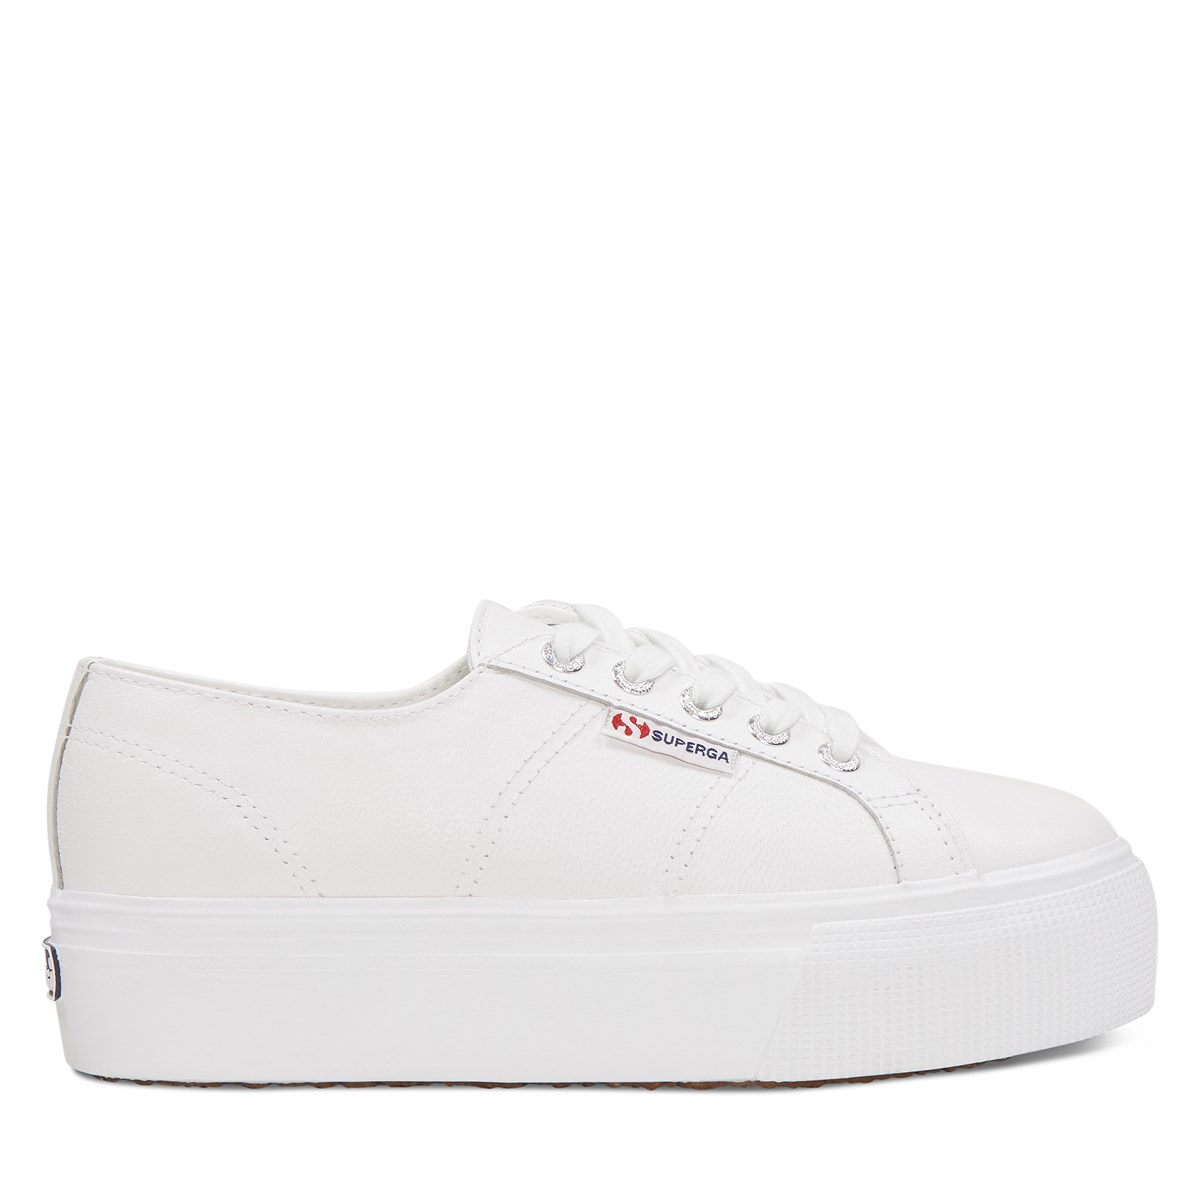 Women's 2790 Leather Platform Sneakers in White